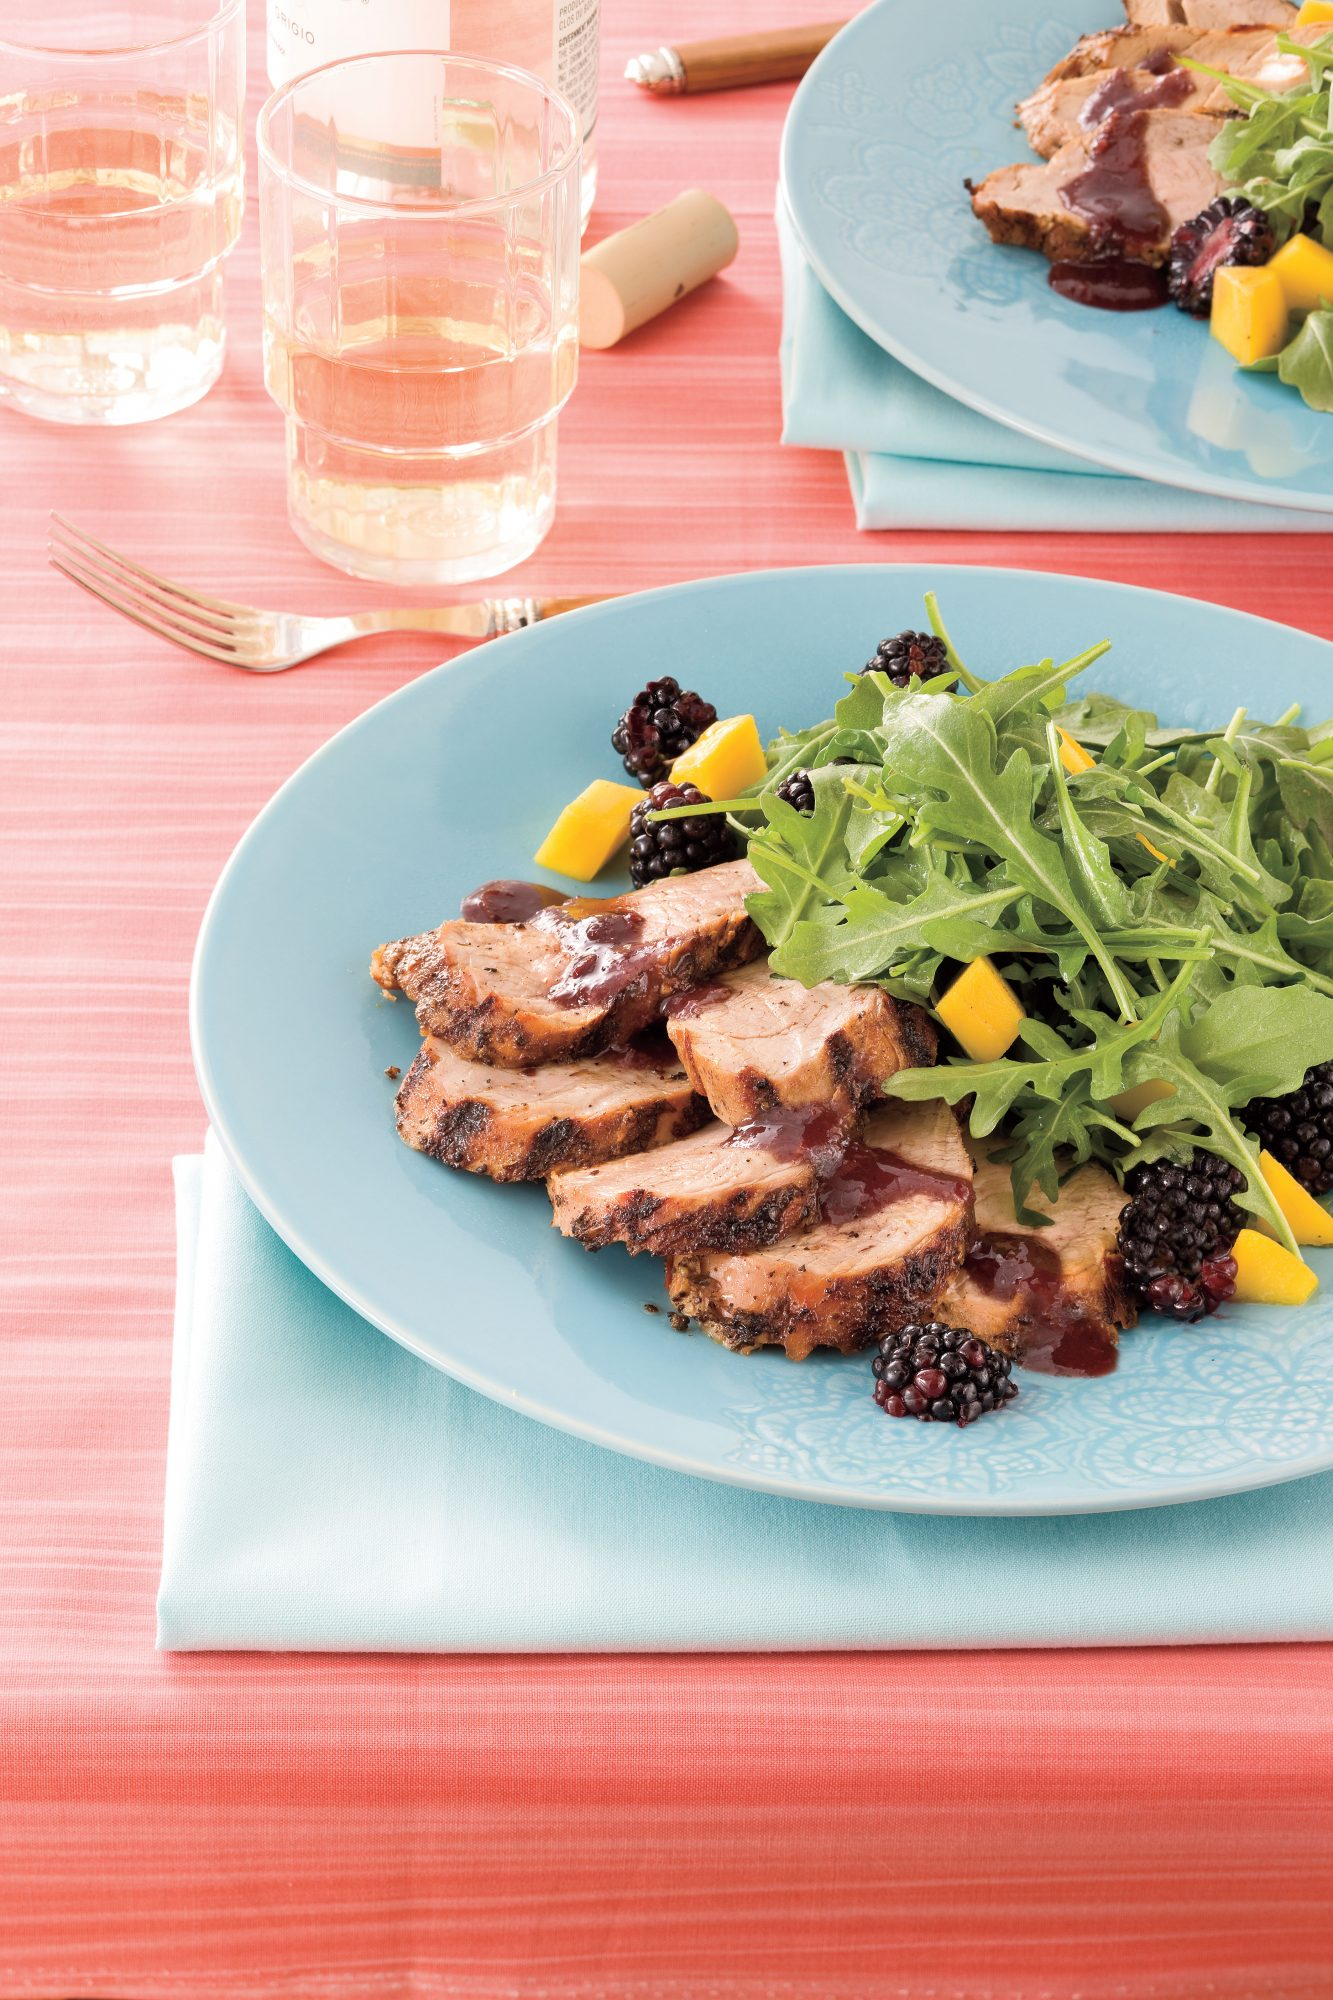 Recipes: Spicy Grilled Pork Tenderloin With Blackberry Sauce